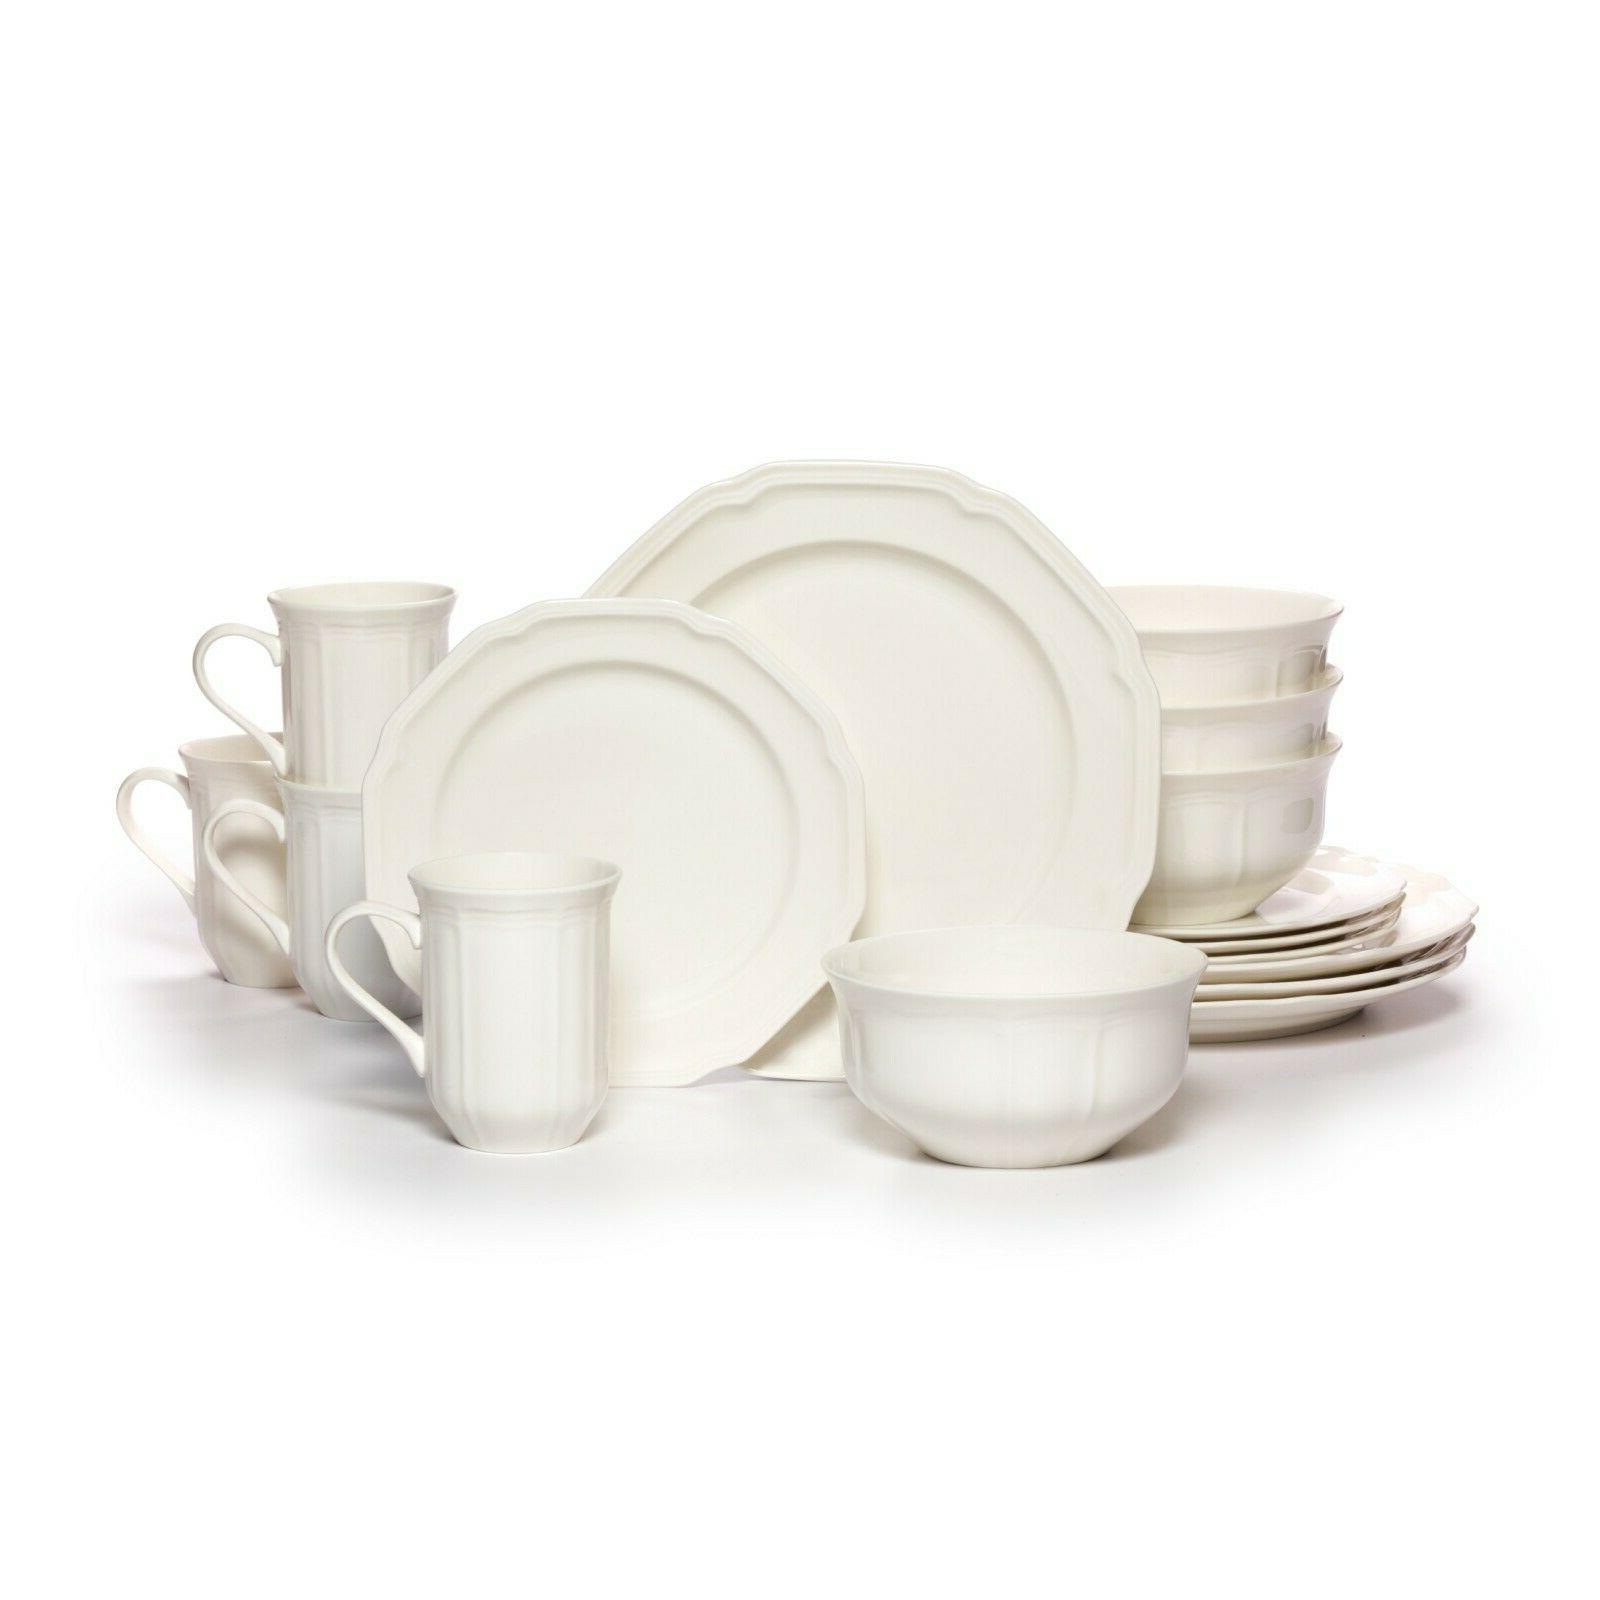 antique white 16 piece dinnerware set